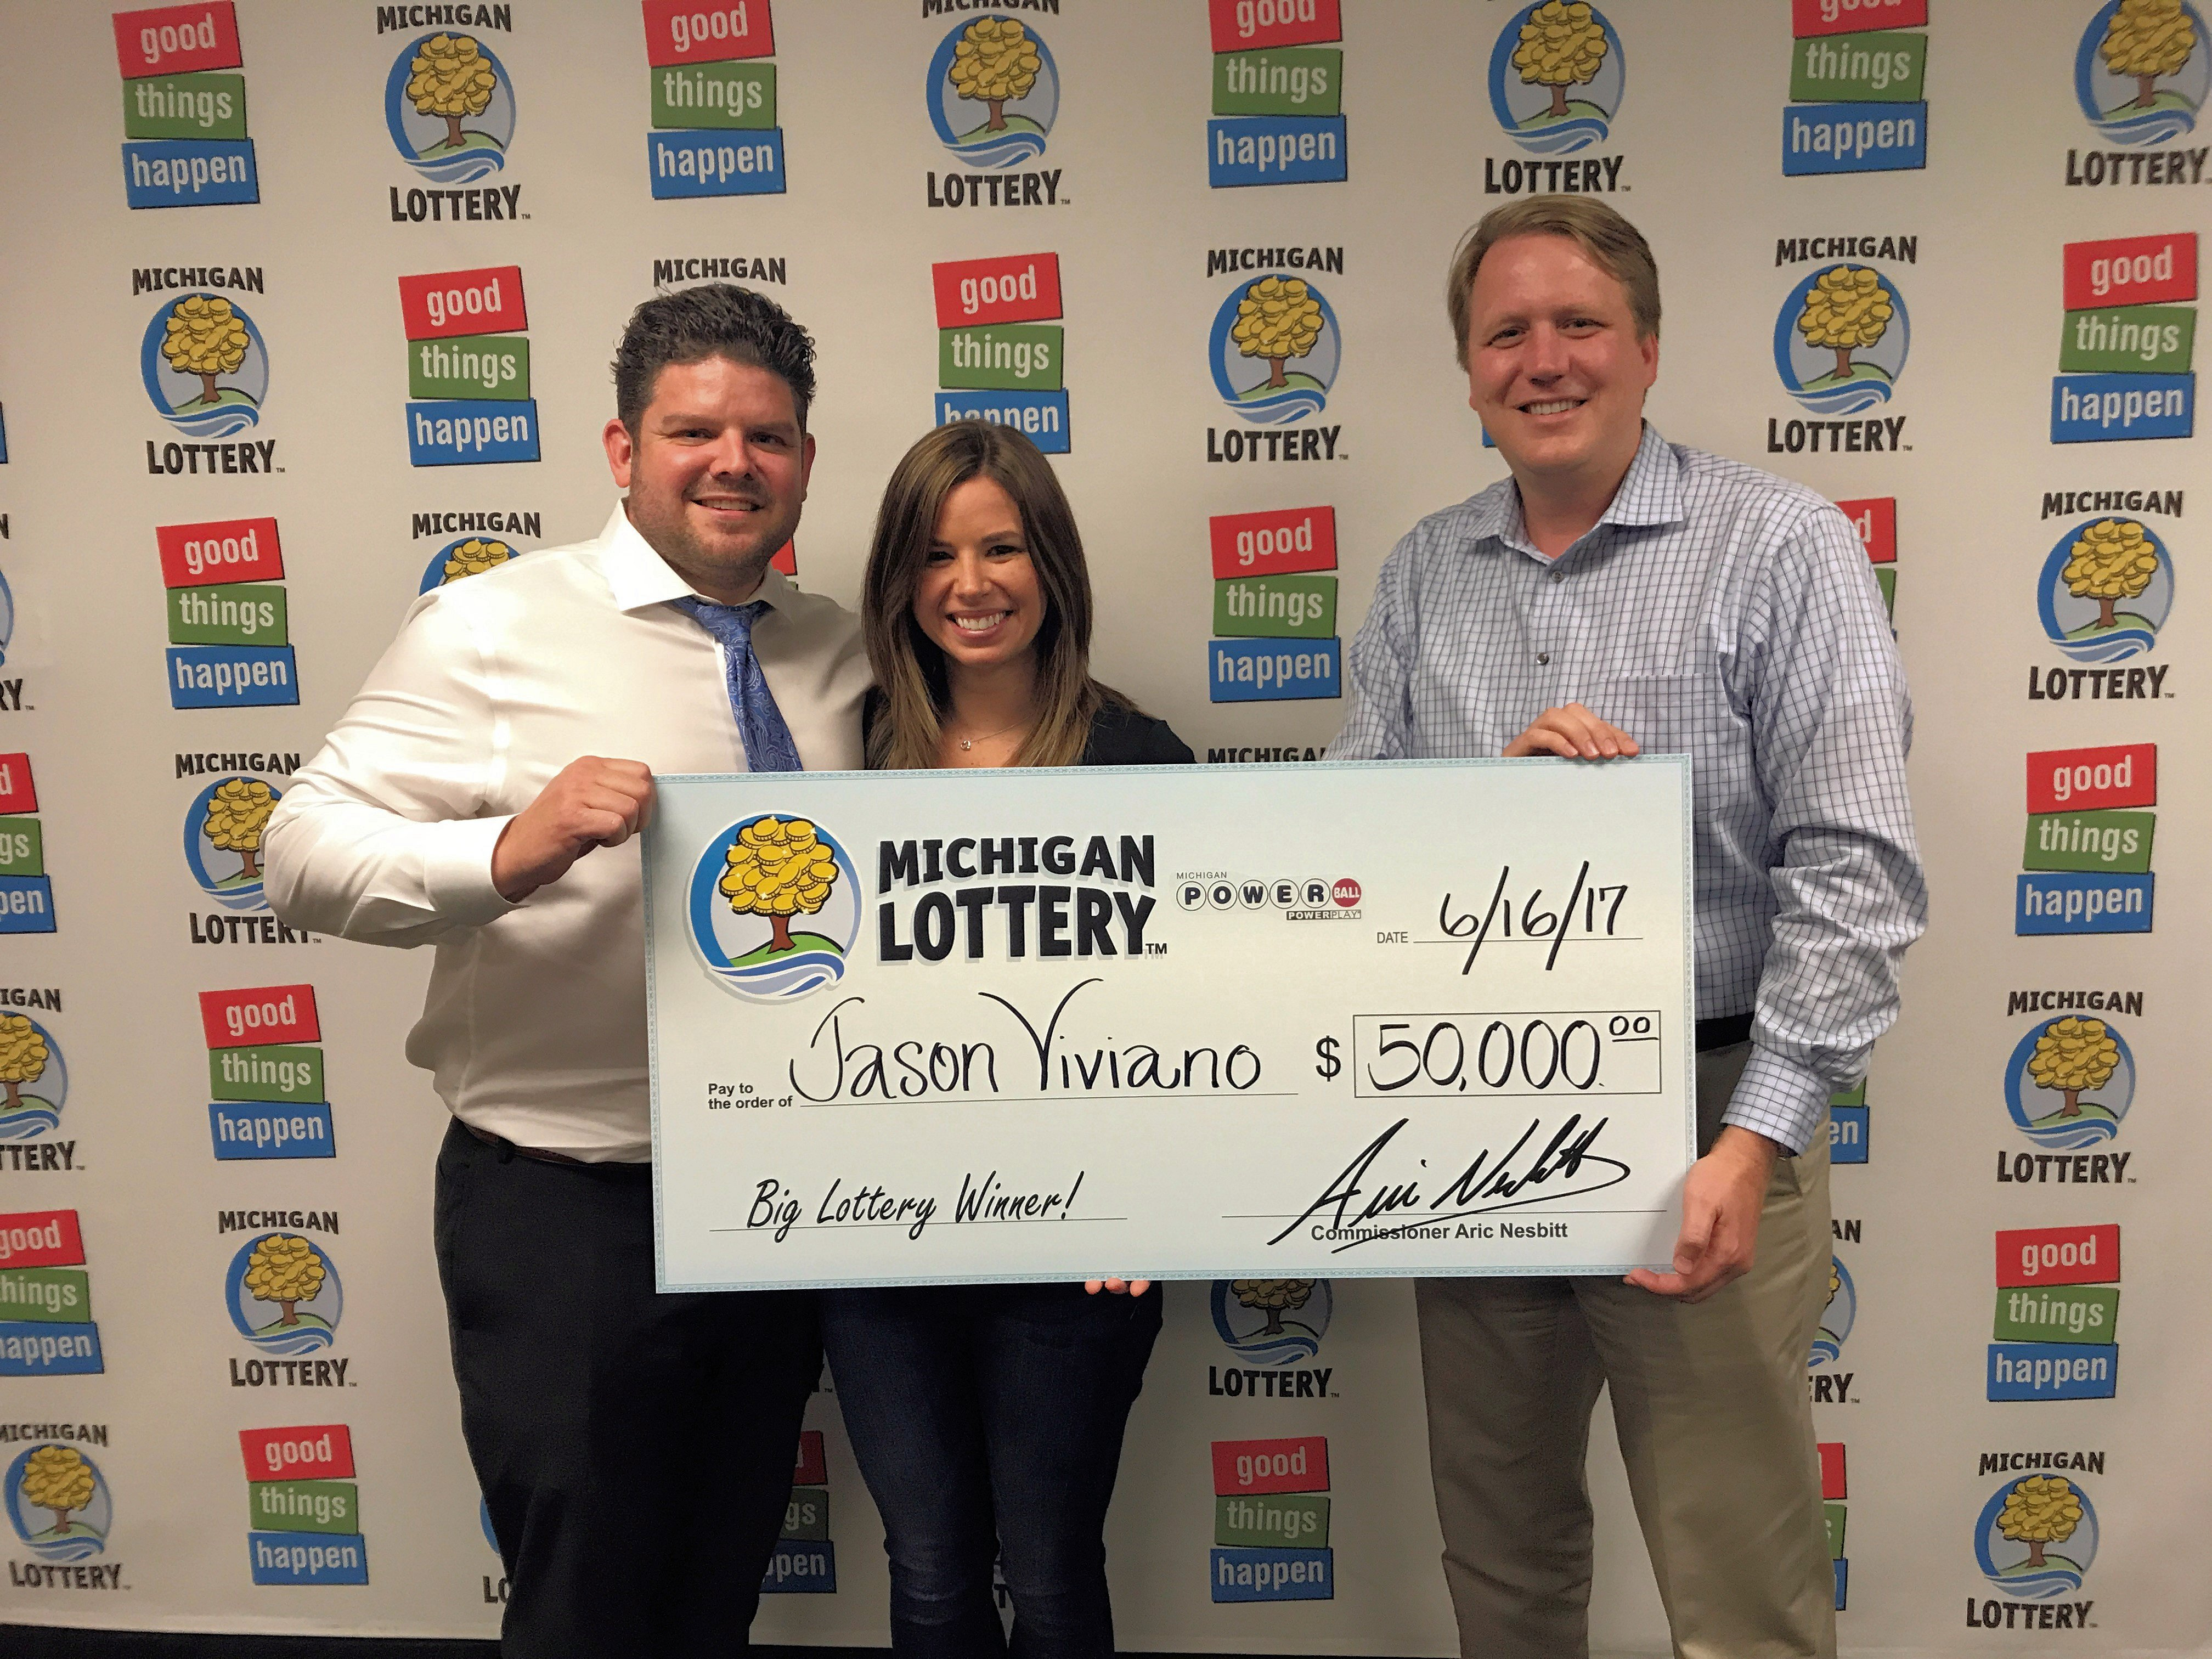 Macomb County Man Wins 50 000 Powerball Prize From The Michigan